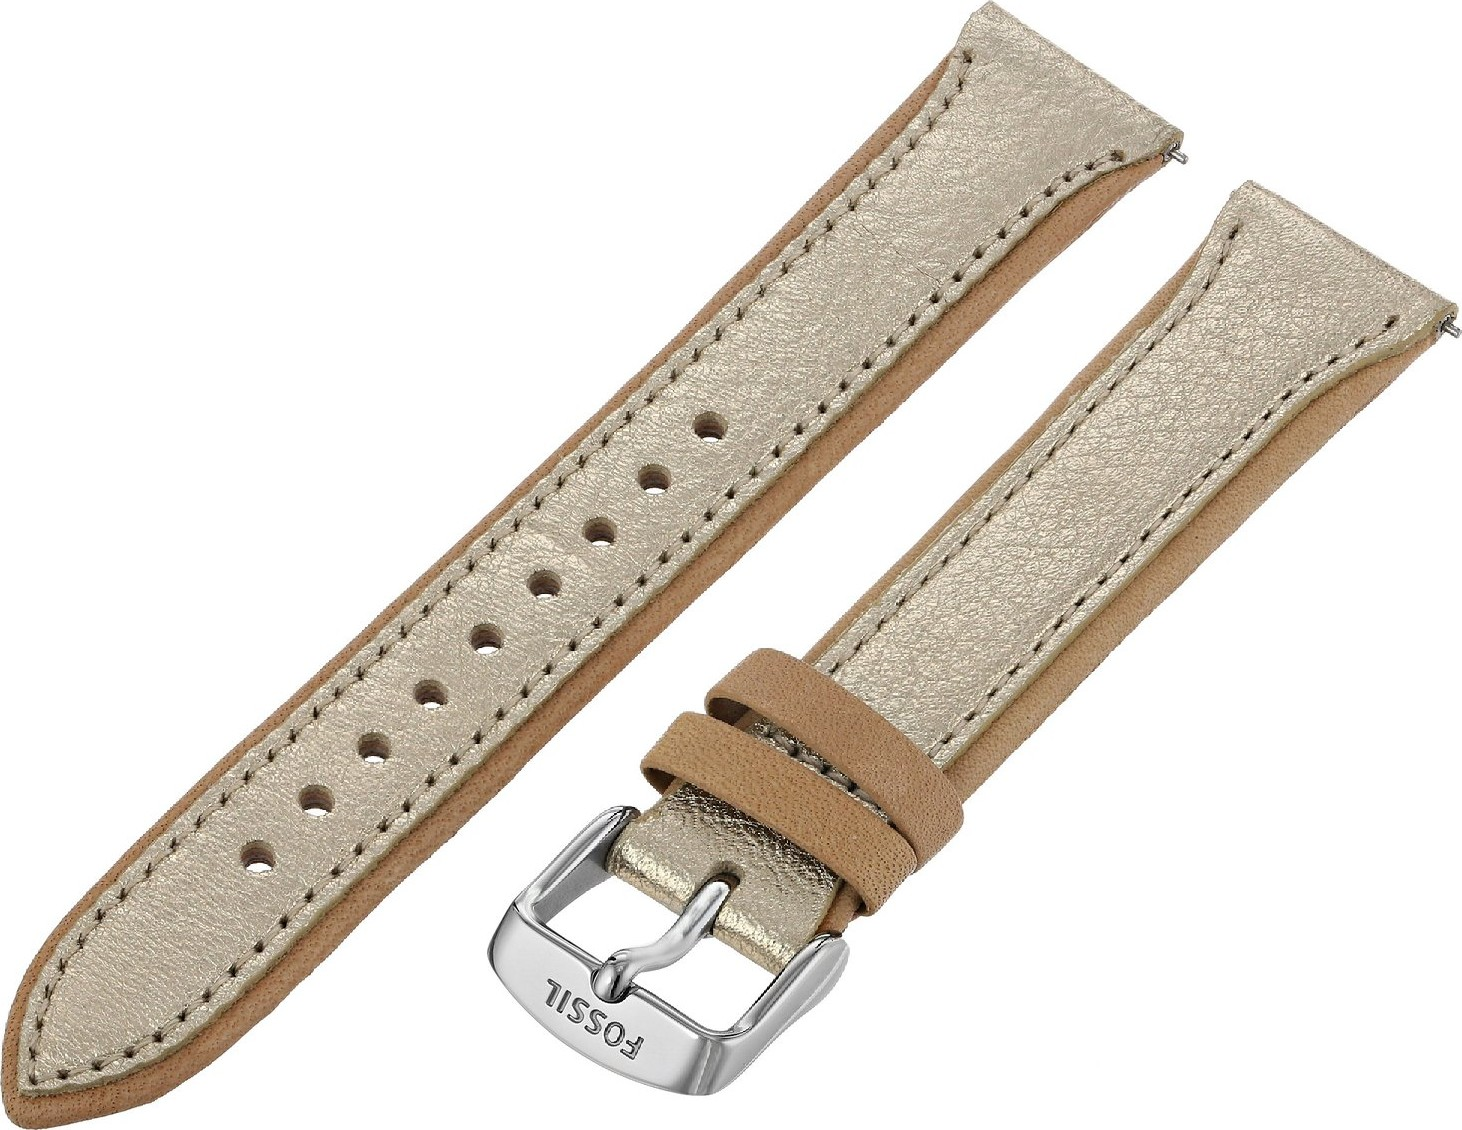 1b0e01c66 Fossil S181244 Women's Leather Watch Strap - Gold Metallic 18mm